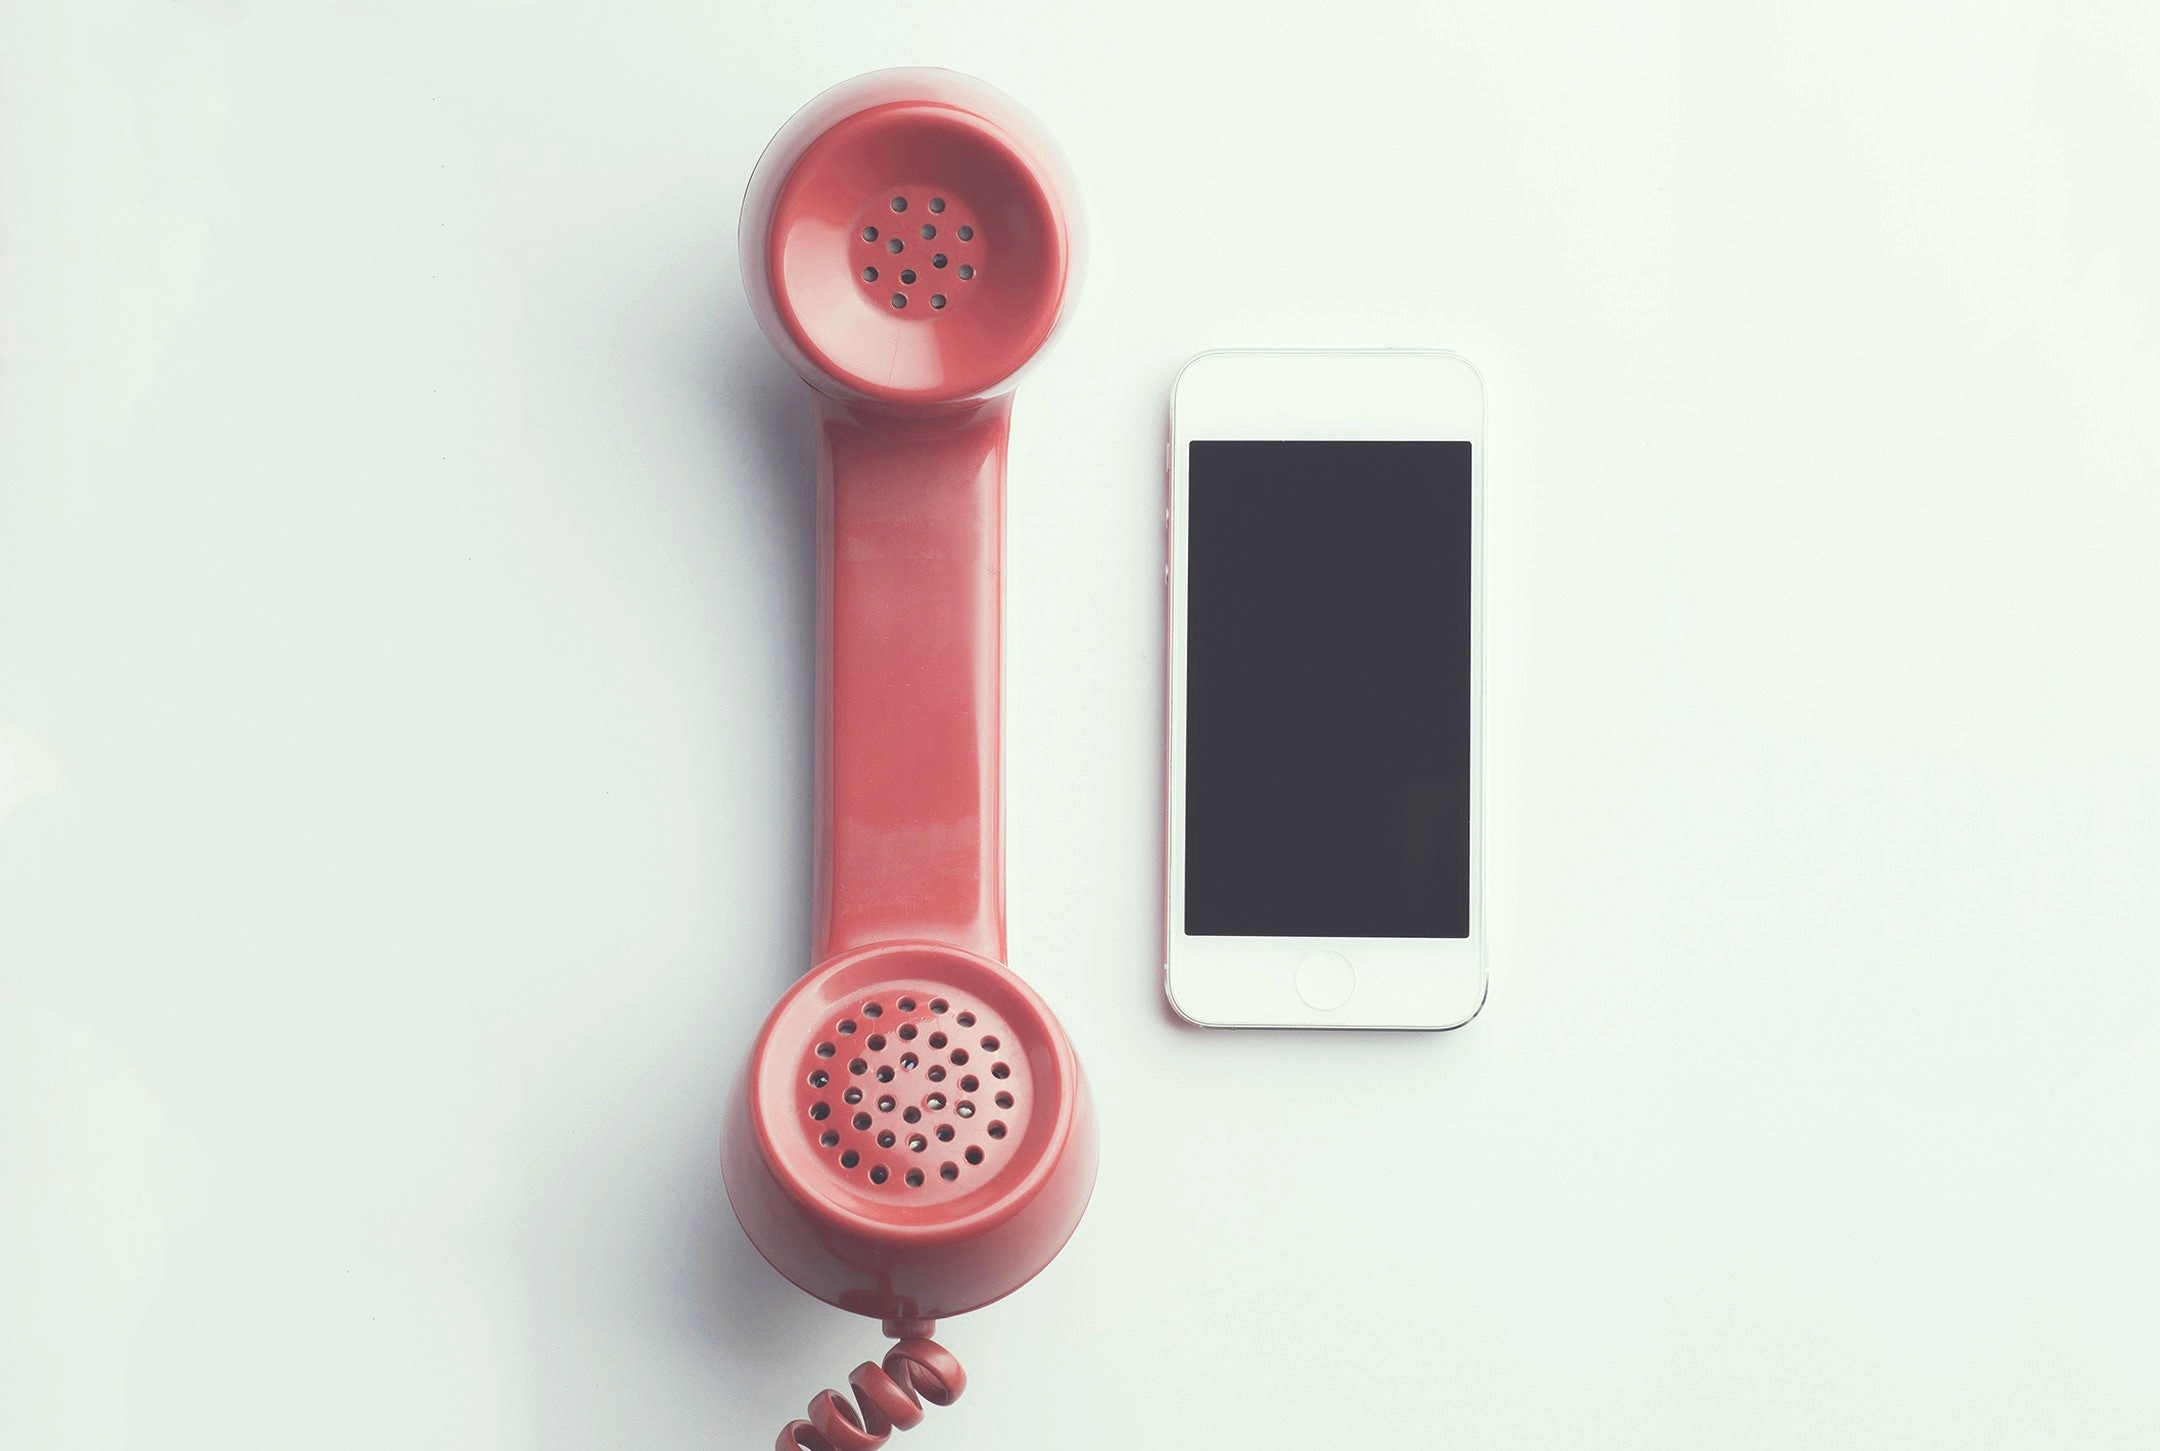 1. Phone Consultation - The process begins with getting a feel for your needs and budget, which will allow us to plan an on-site assessment. We will ask you questions about your residence or office, the type of sound to be controlled, and other questions to help establish the scope of the project.